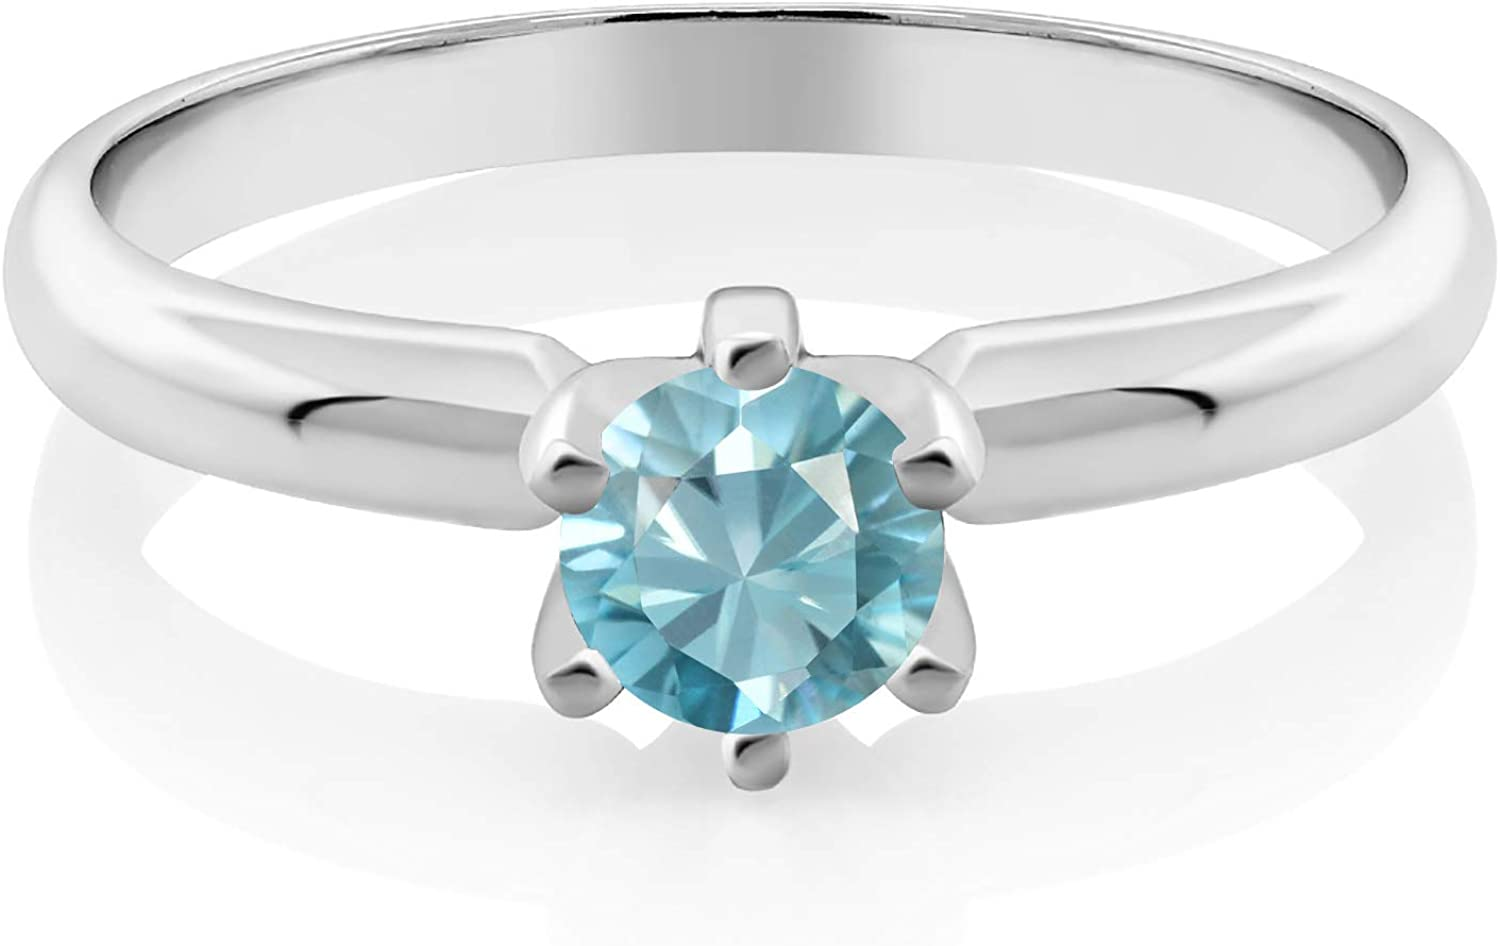 925 Sterling Silver Blue Topaz Ring Gemstone Oval Claw Solitaire US Size 7 8 9